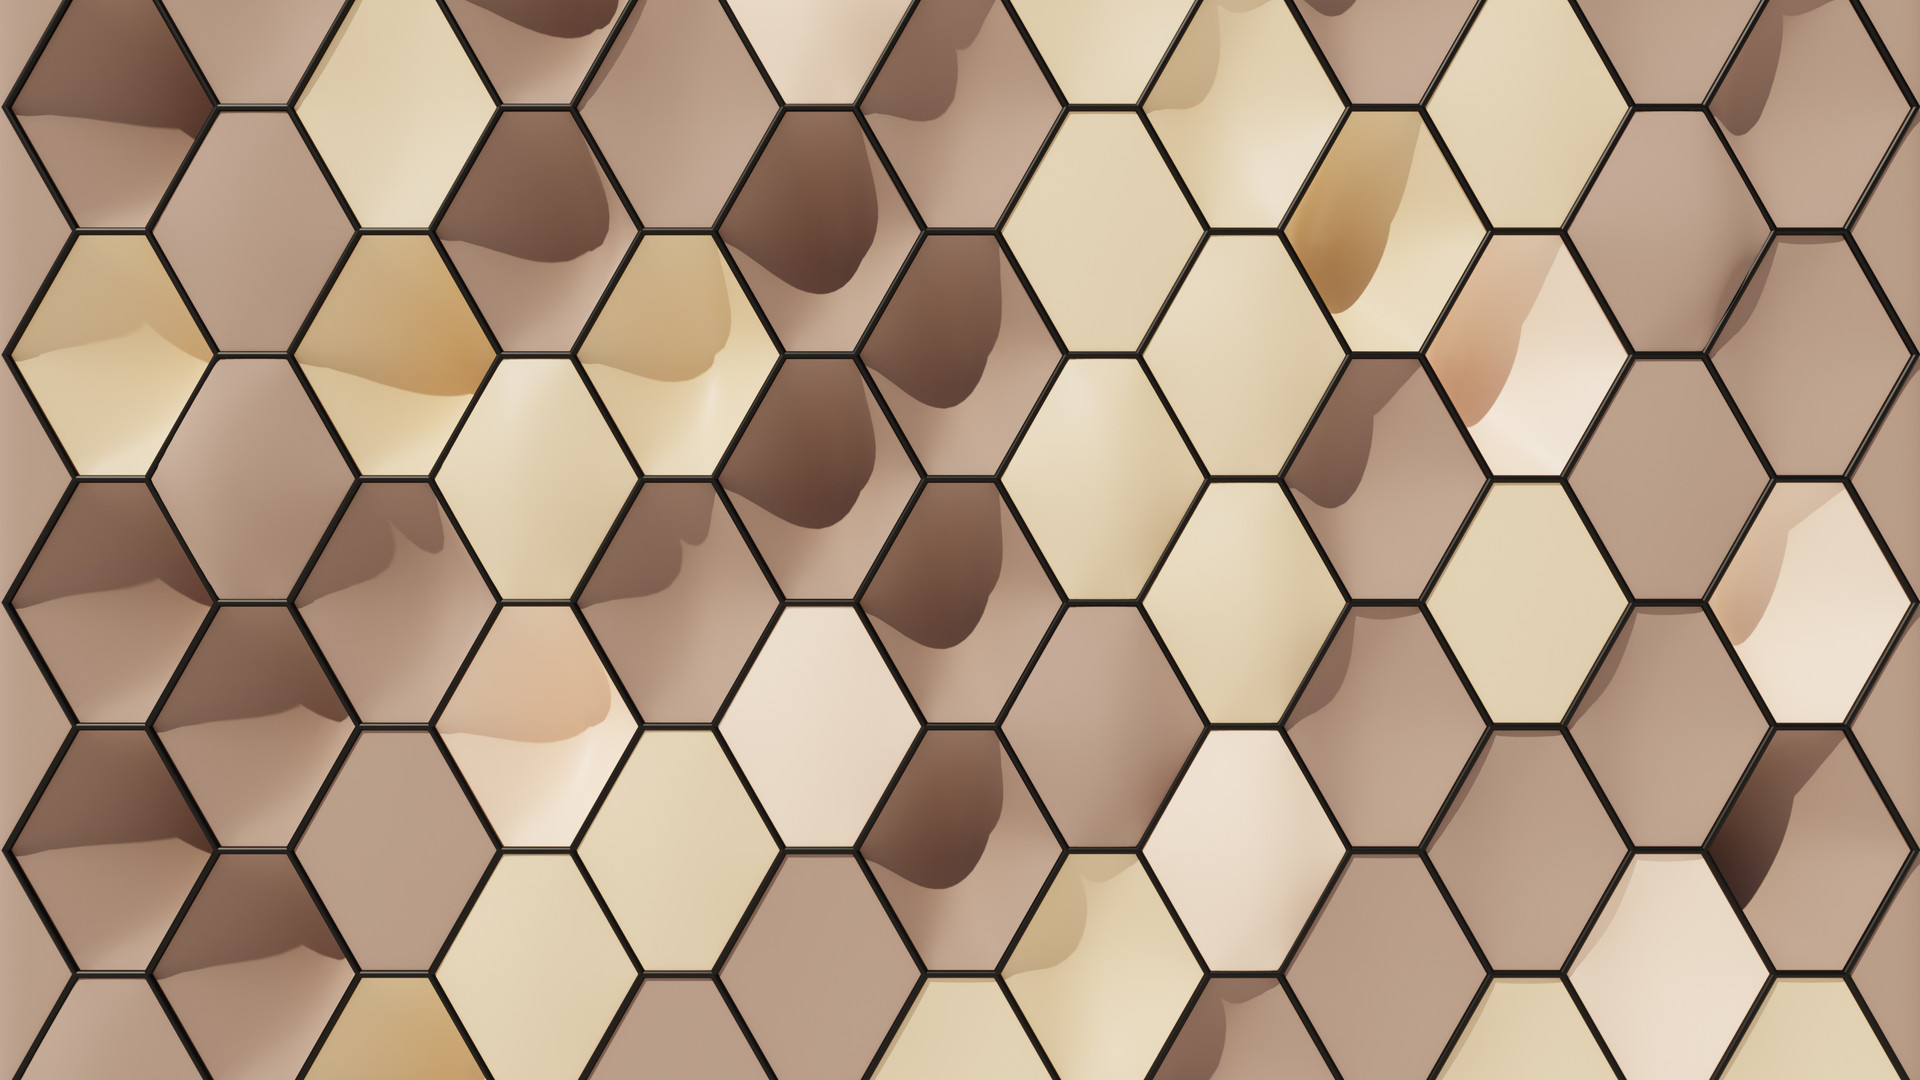 Inflated Hexagon Pattern